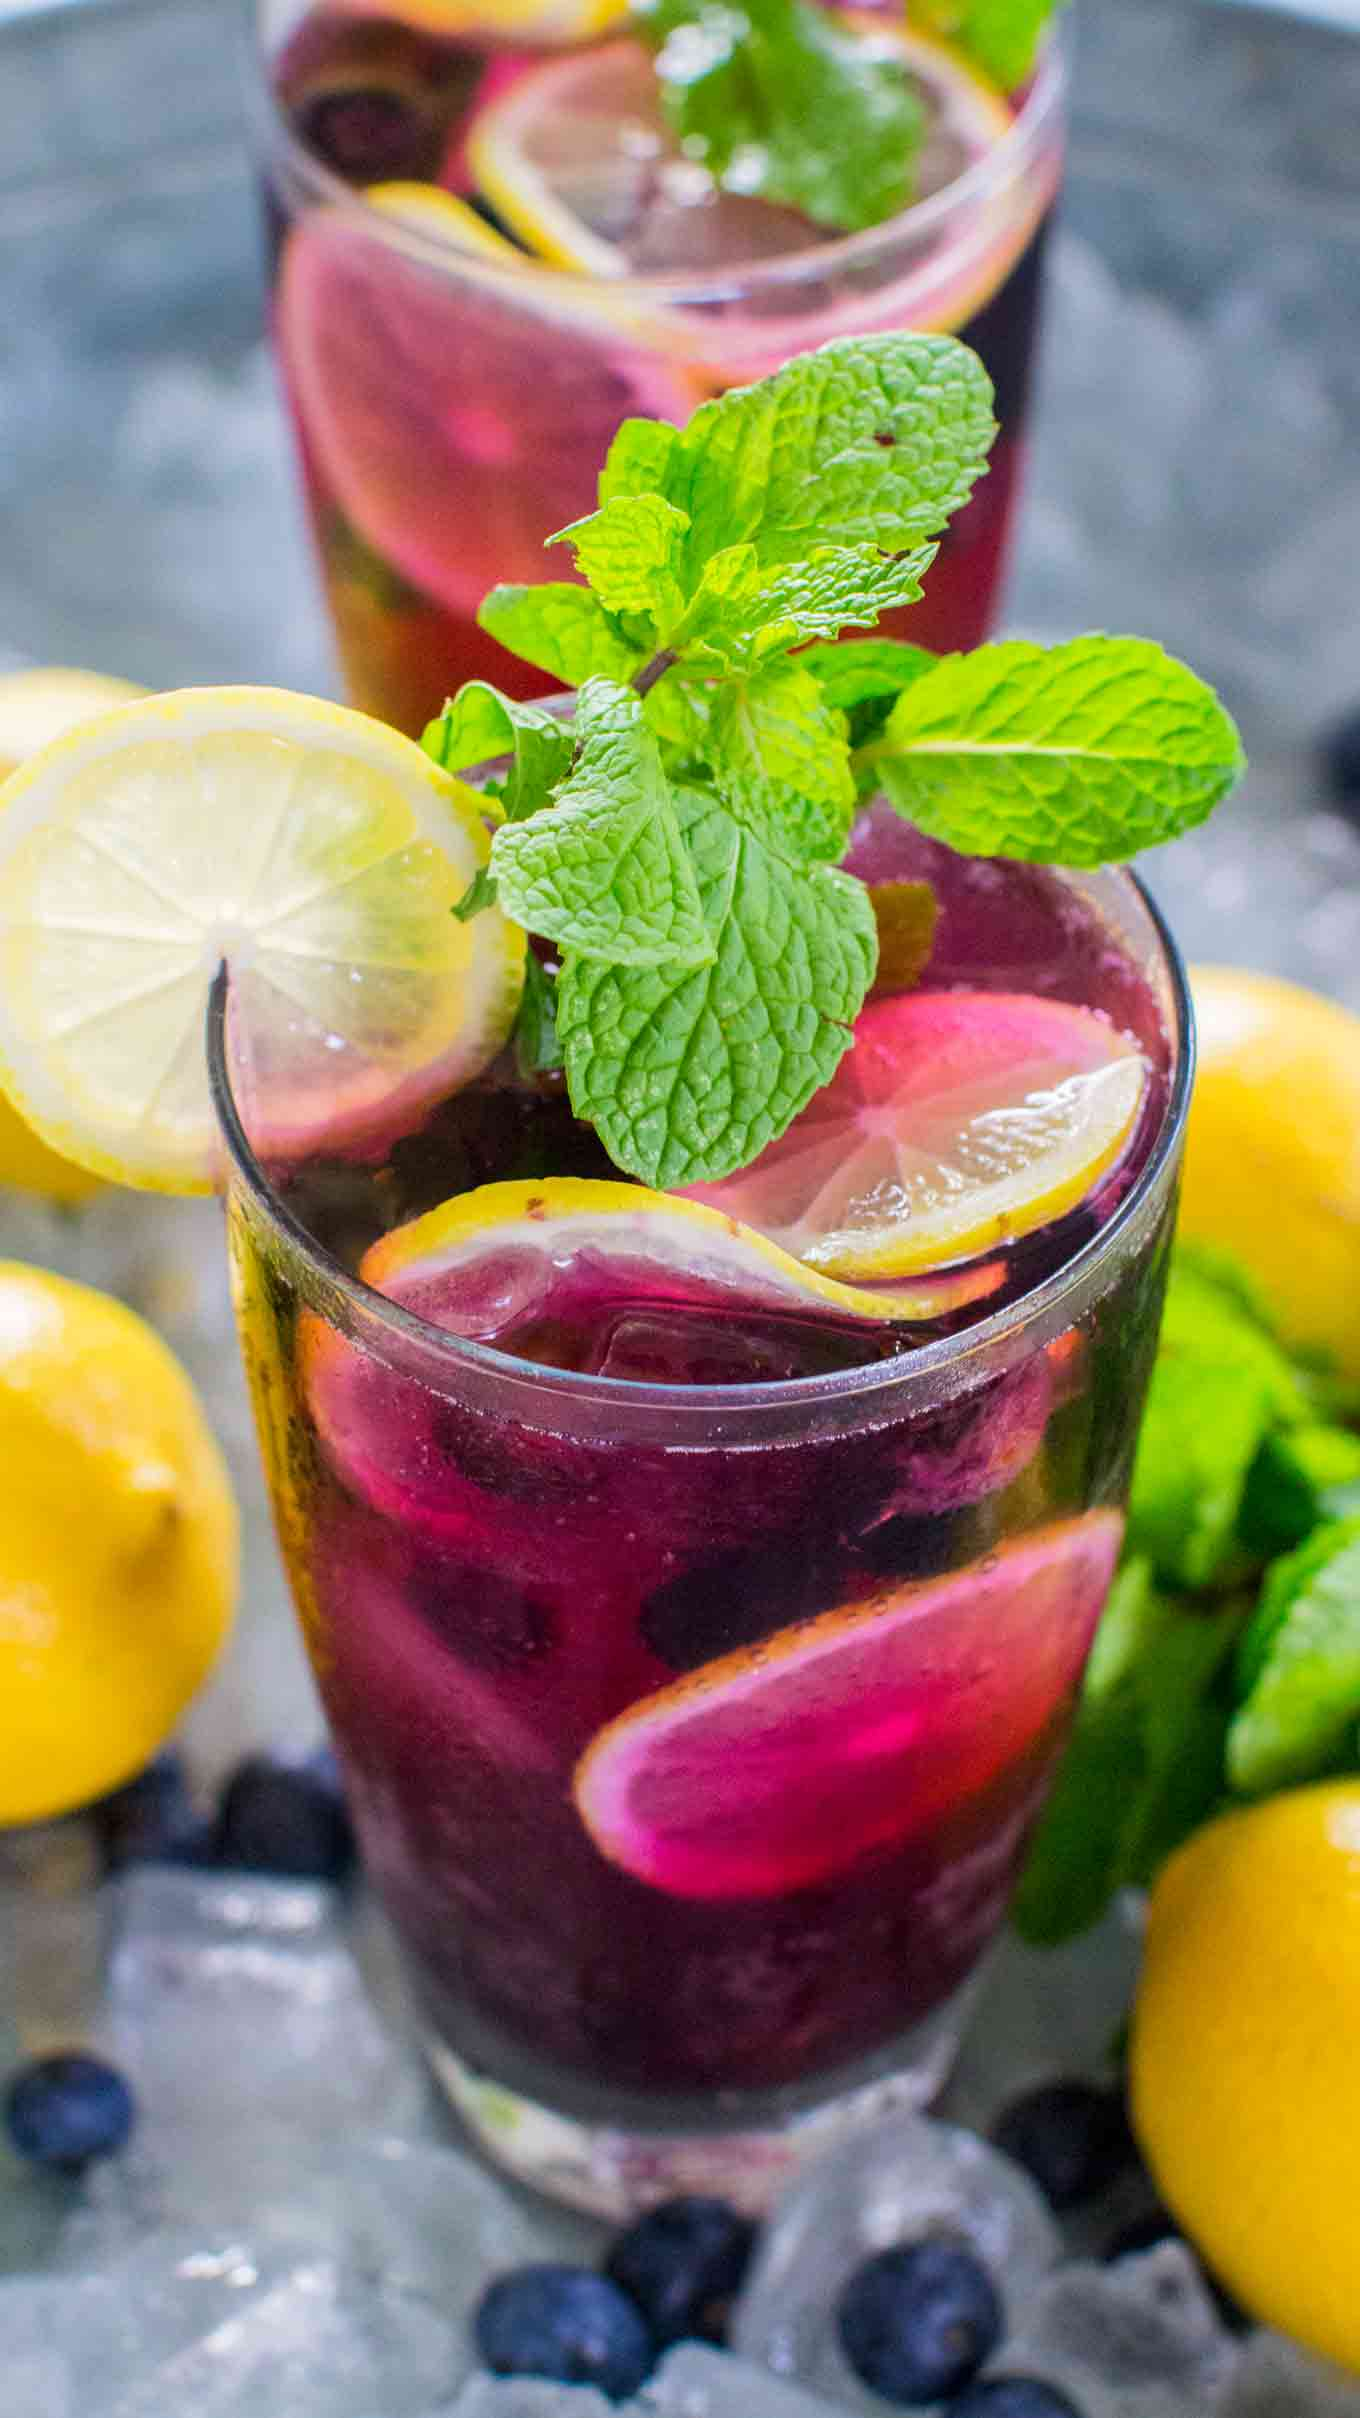 Refreshing Blueberry Lemonade tastes delicious and refreshing year round. Made easy with sweet blueberry simple syrup and fresh lemon juice.